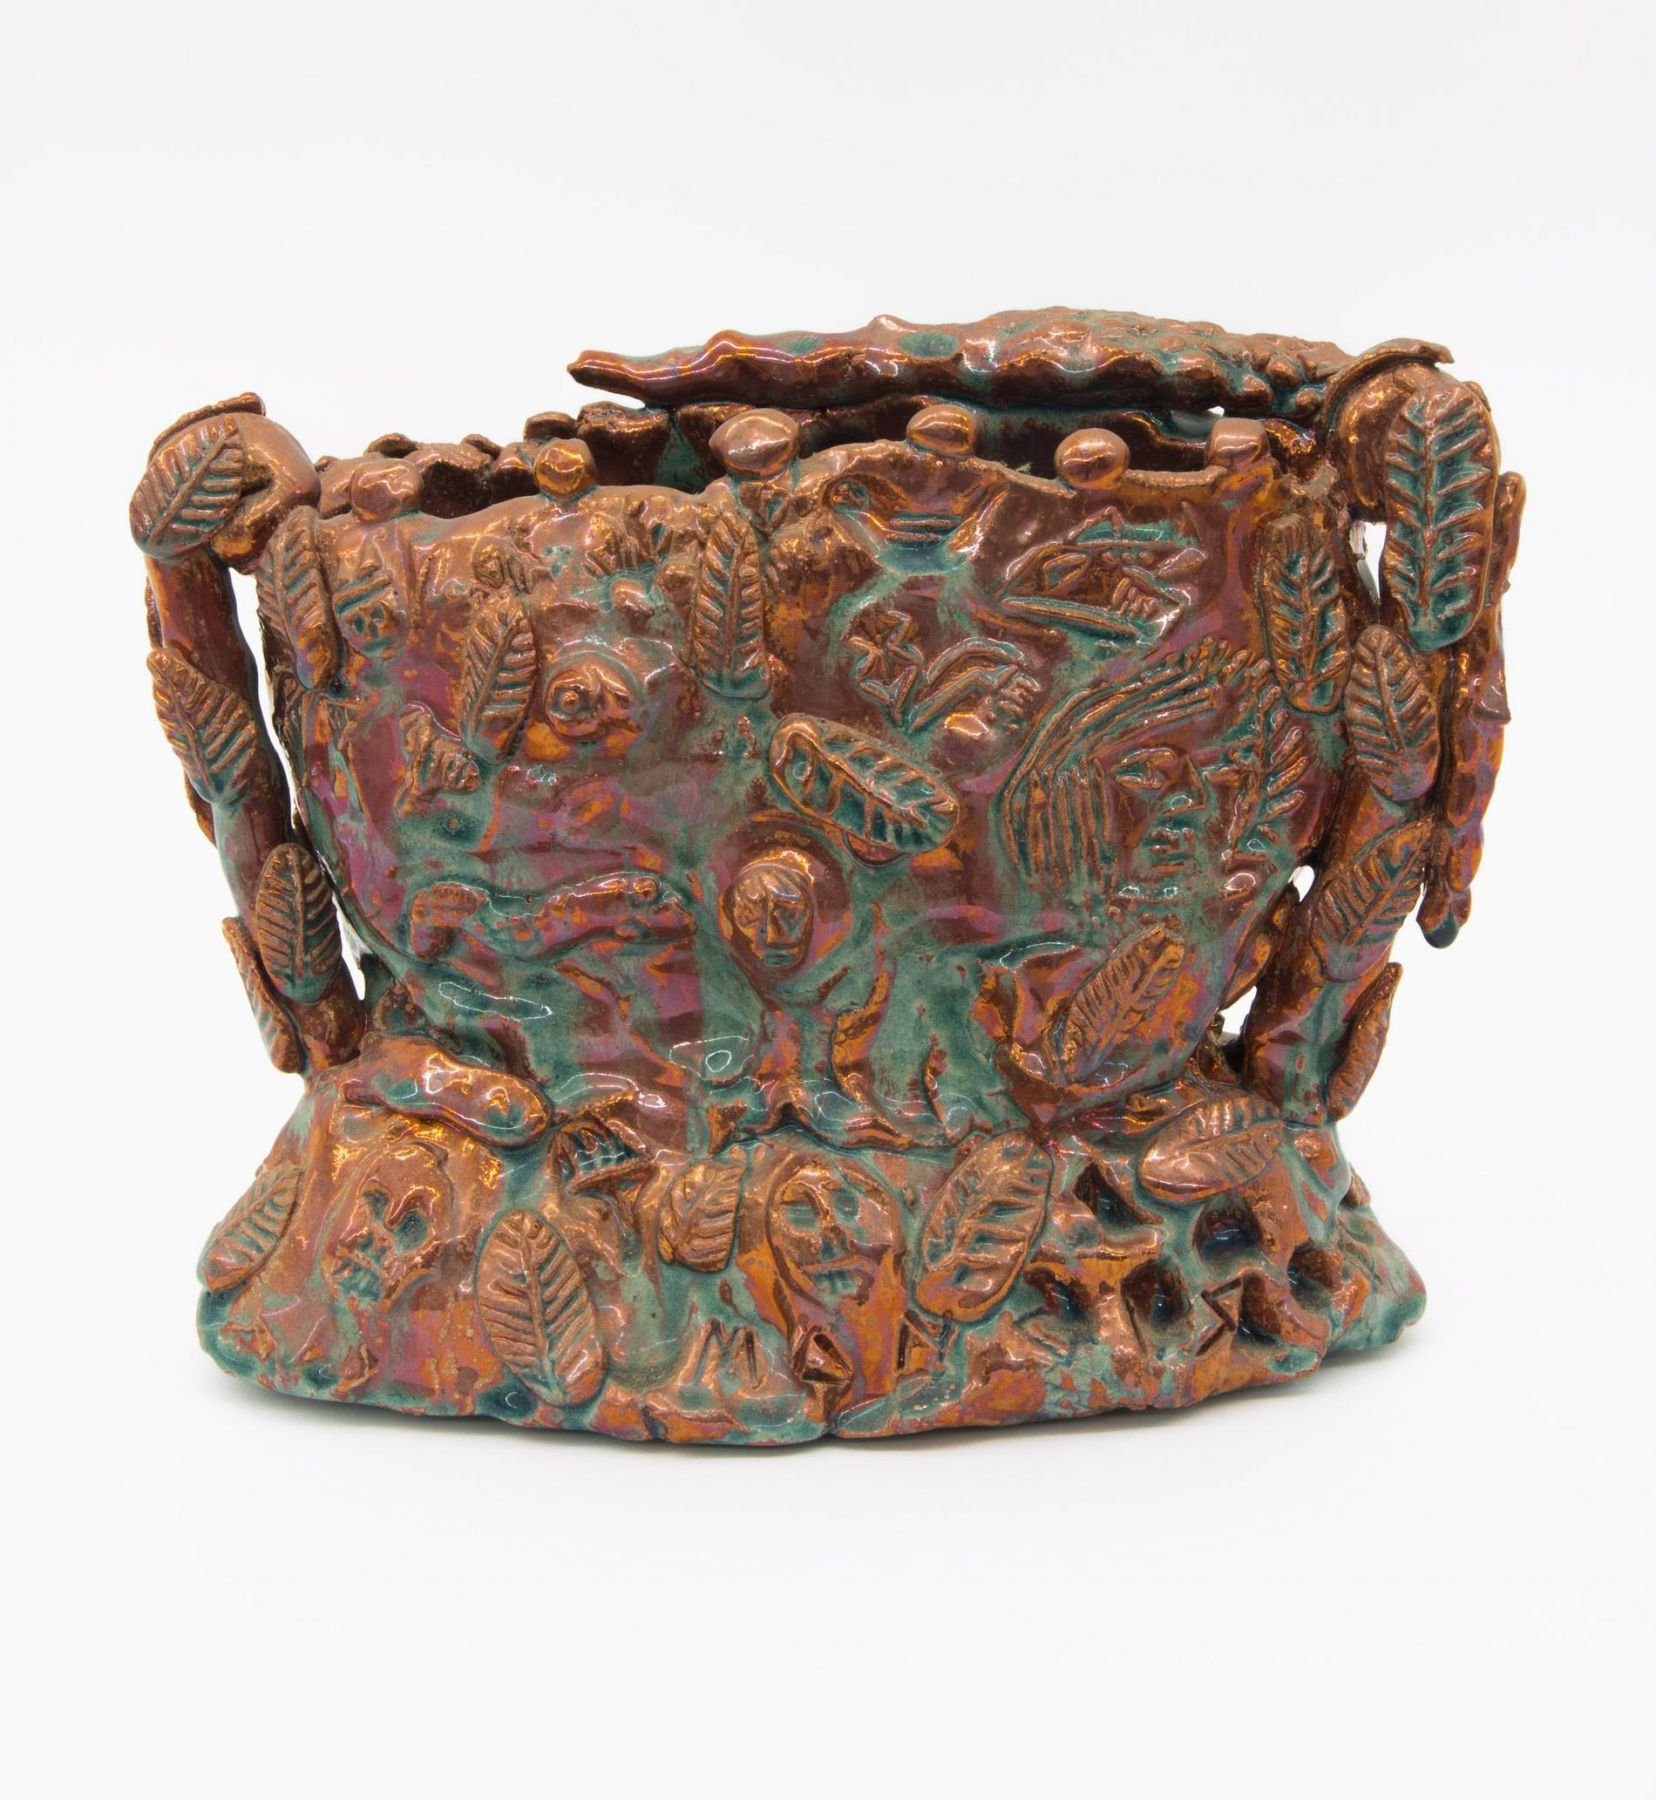 , Bountiful Life Red Luster, 1986, Luster glazed earthenware, 8 1/2 x 11 x 5 in.